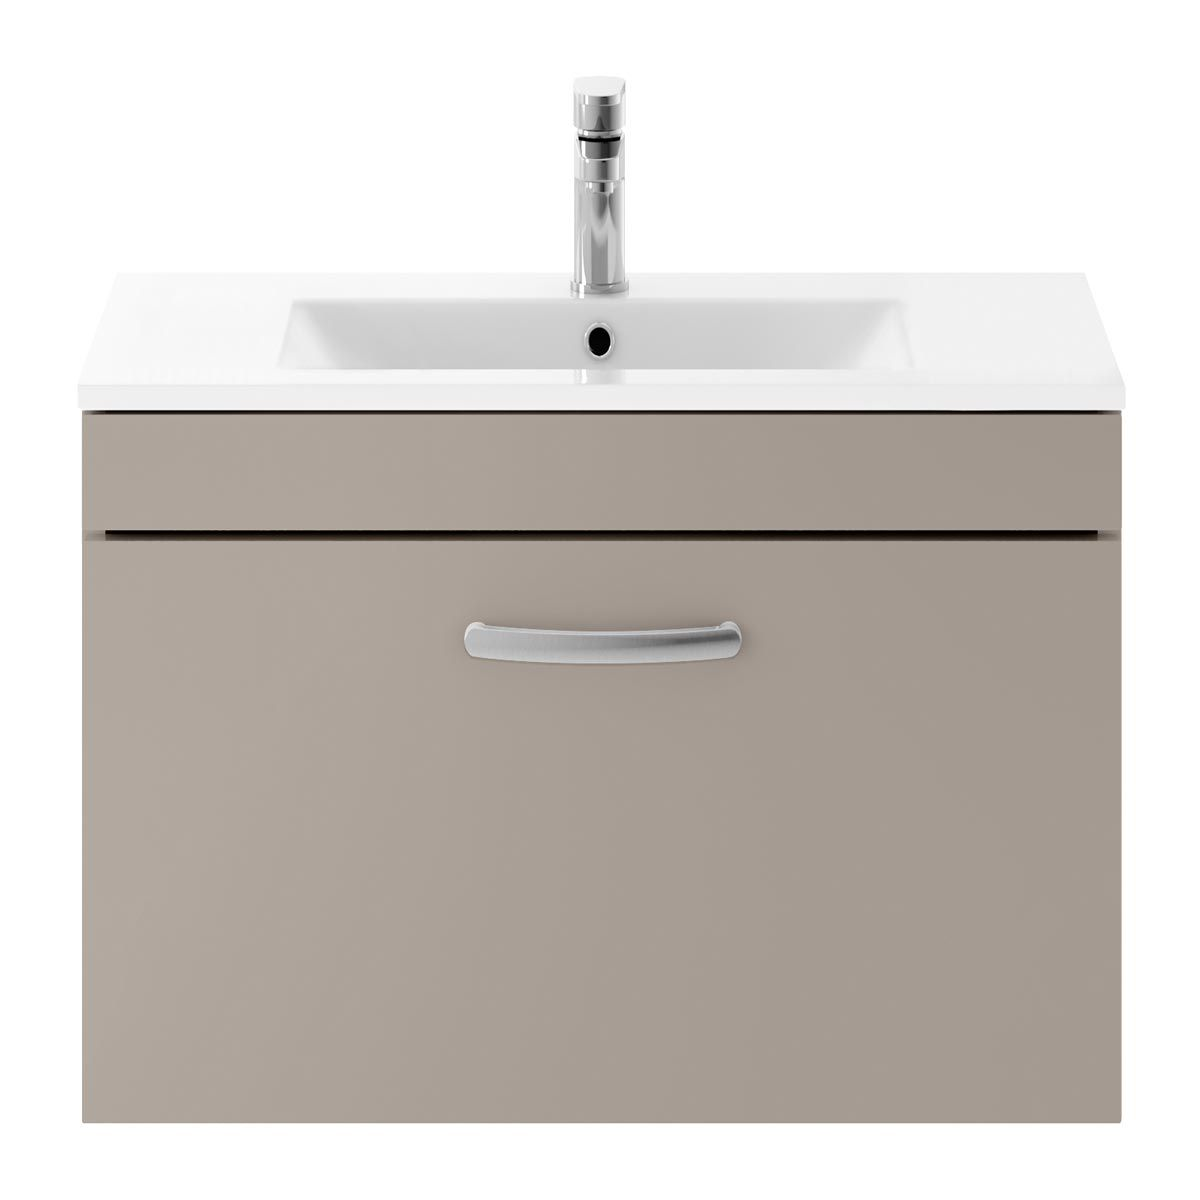 Nuie Athena Stone Grey 1 Drawer Wall Hung Vanity Unit with 18mm Profile Basin 800mm